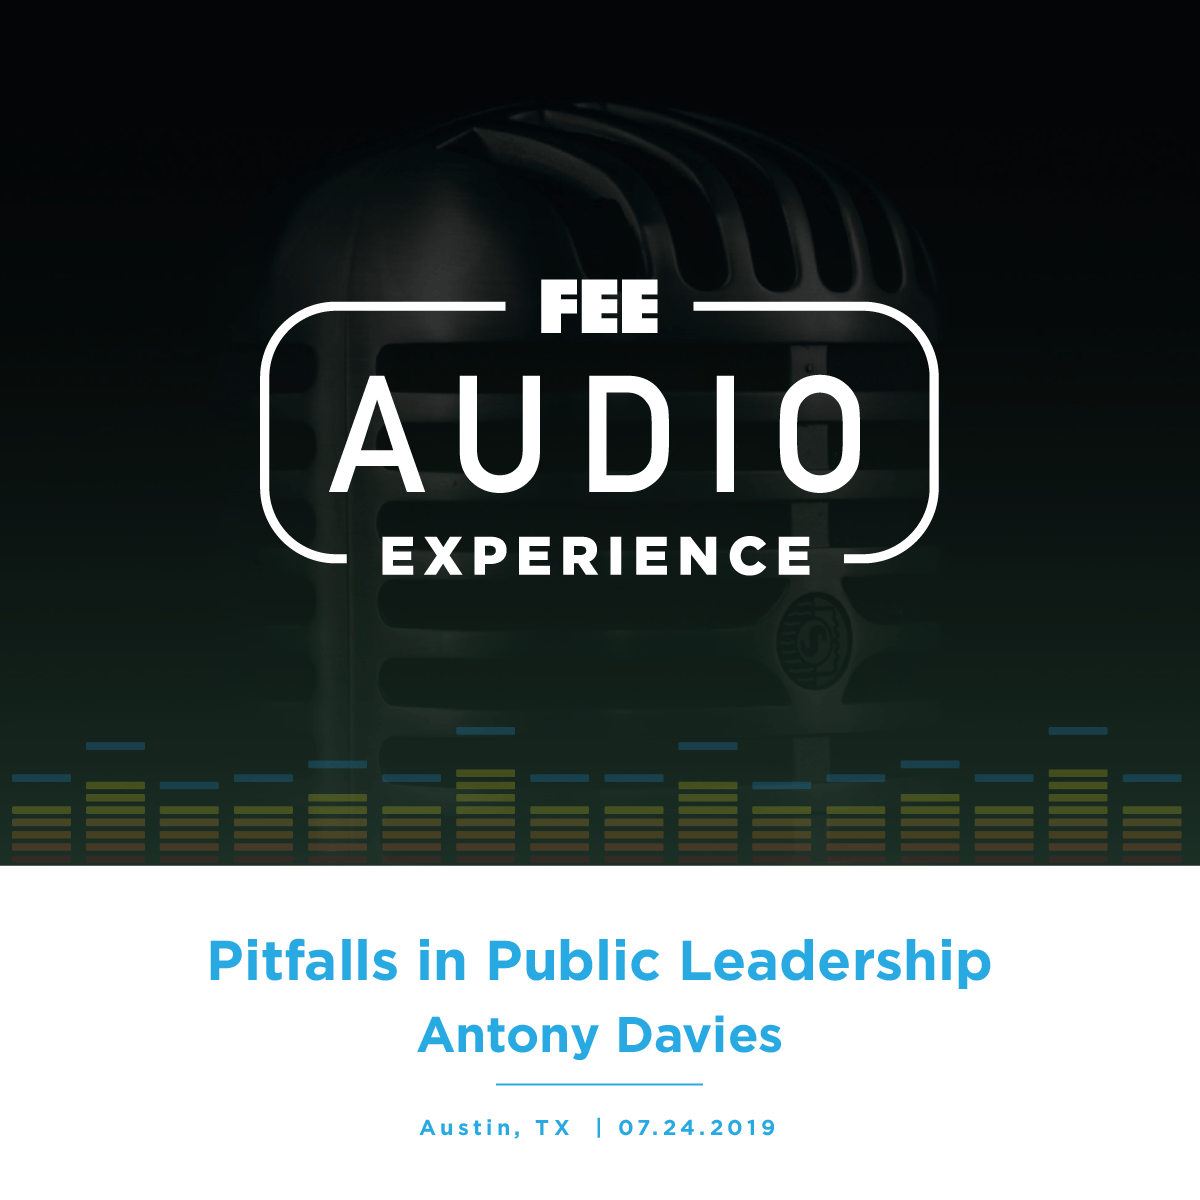 St. Edwards 2019 | Pitfalls in Public Leadership